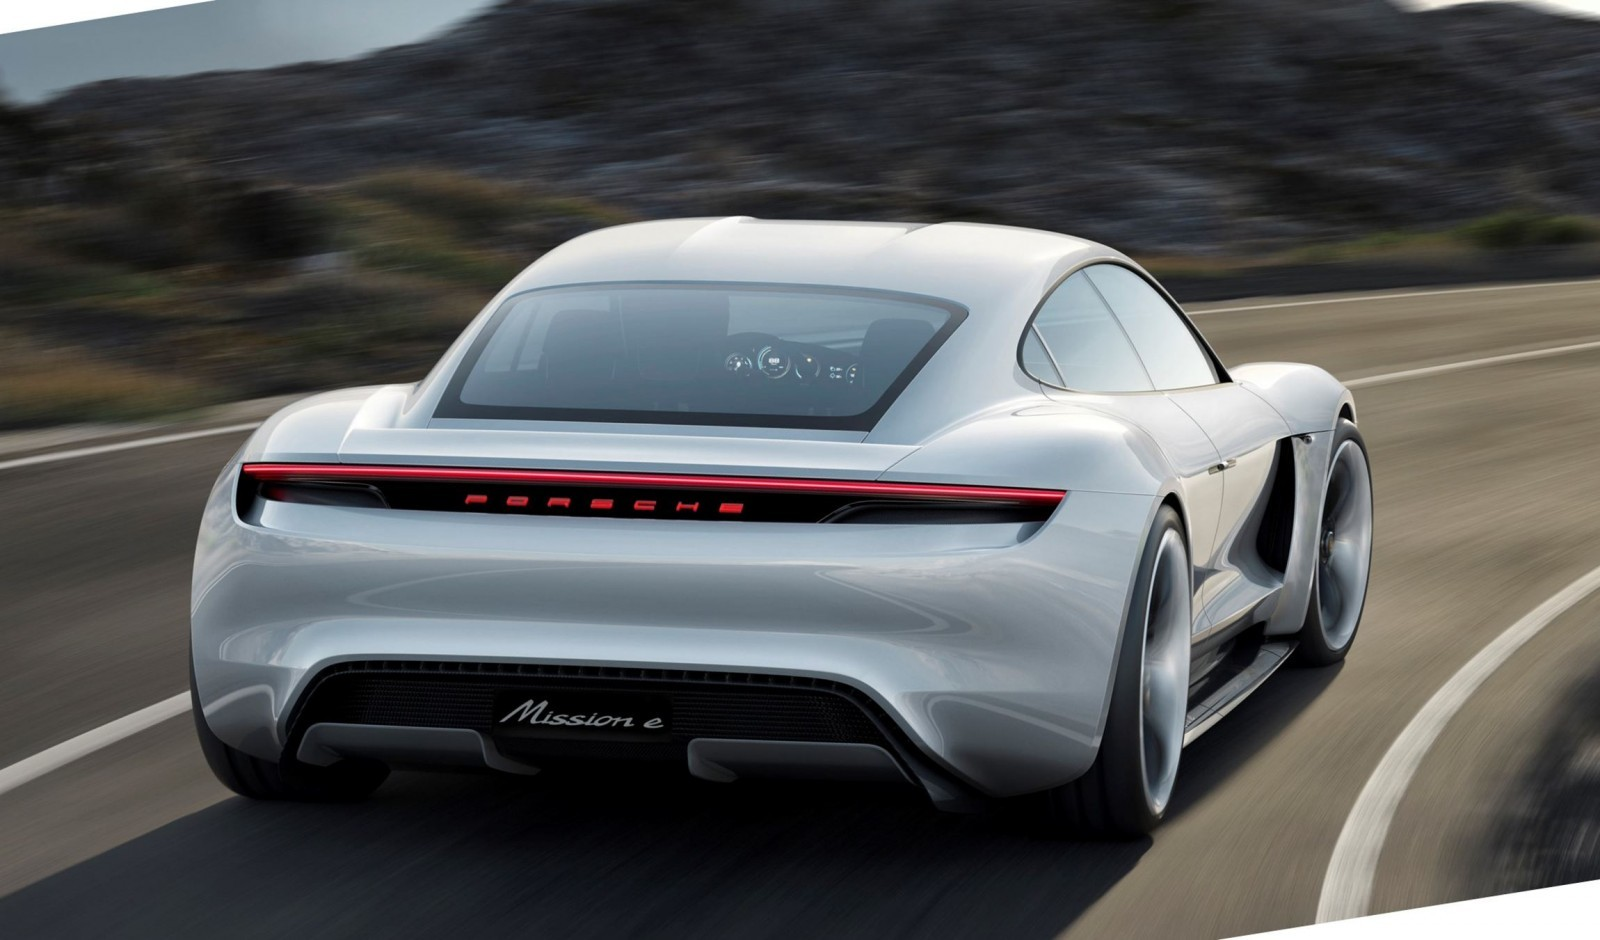 3 5s 2015 Porsche Mission E 600hp Concept Is 4 Door